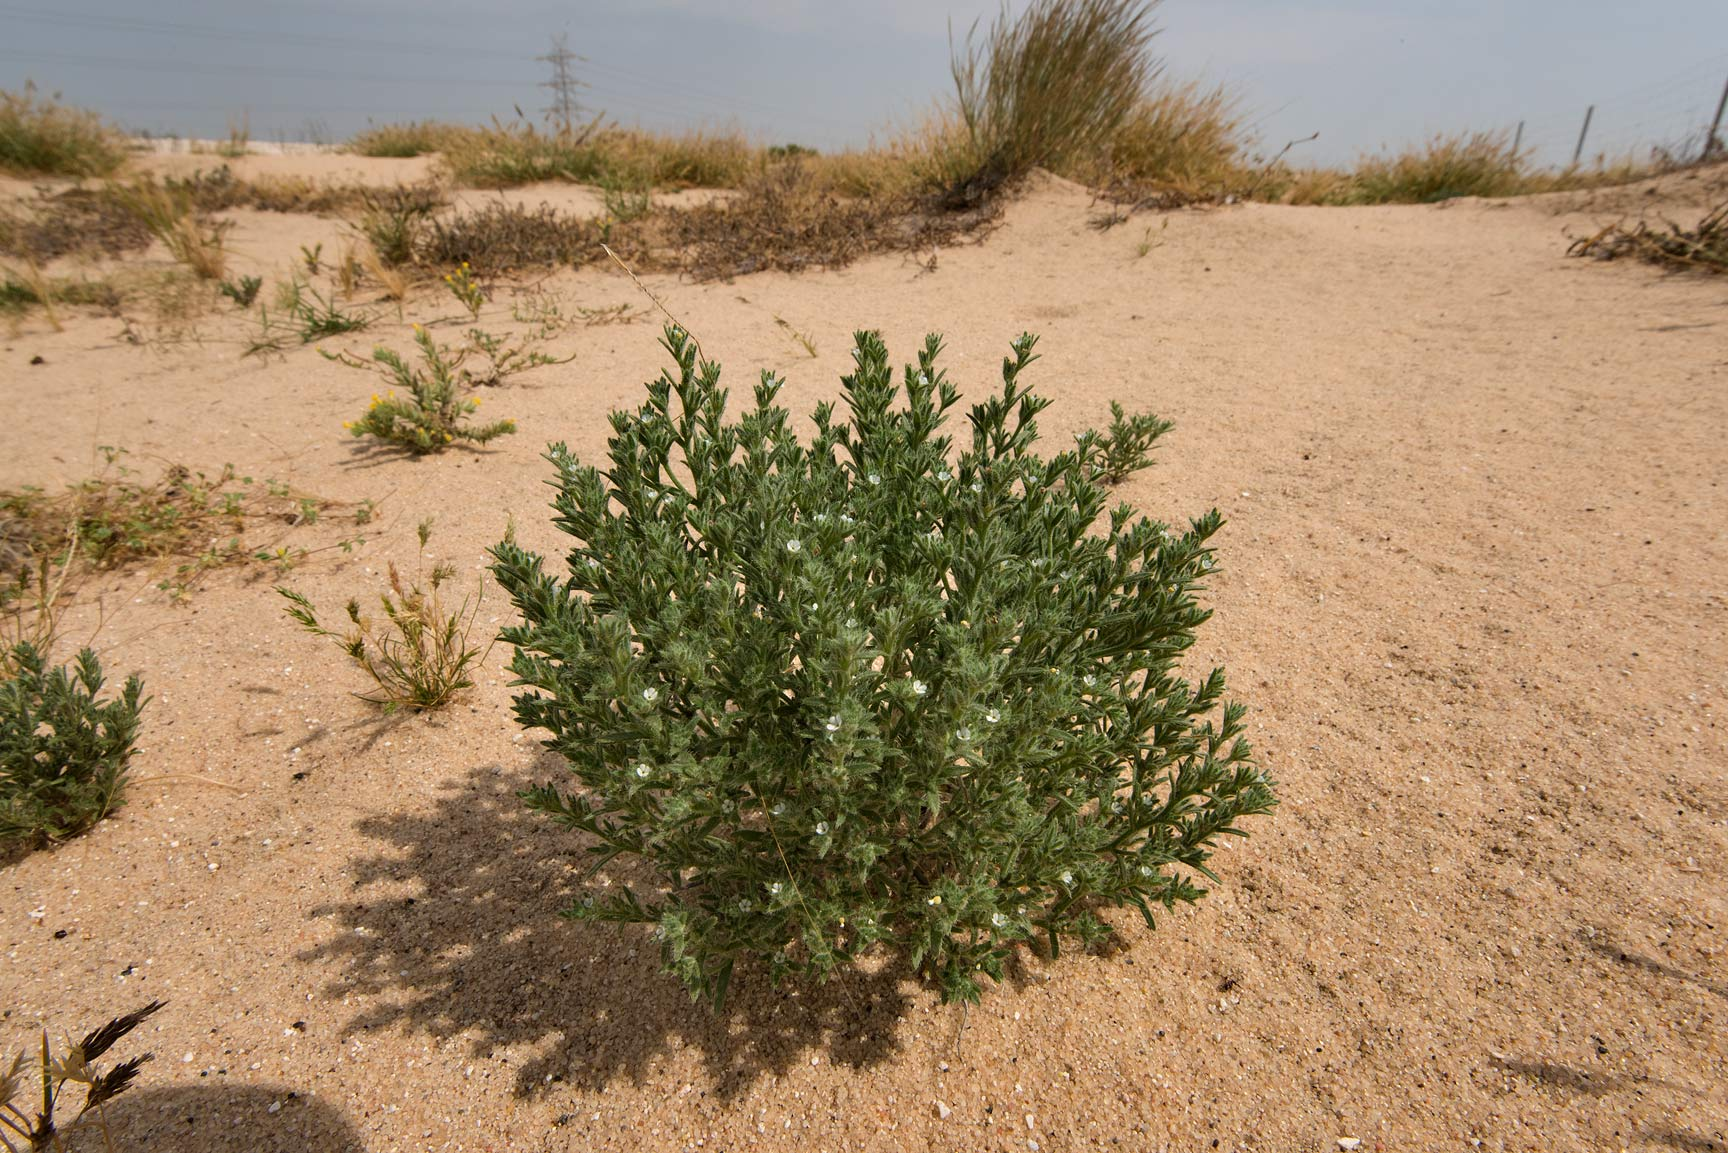 Blooming plant of Ogastemma pusillum (Anchusa...from Khawzan to Al-Jumayliyah. Qatar